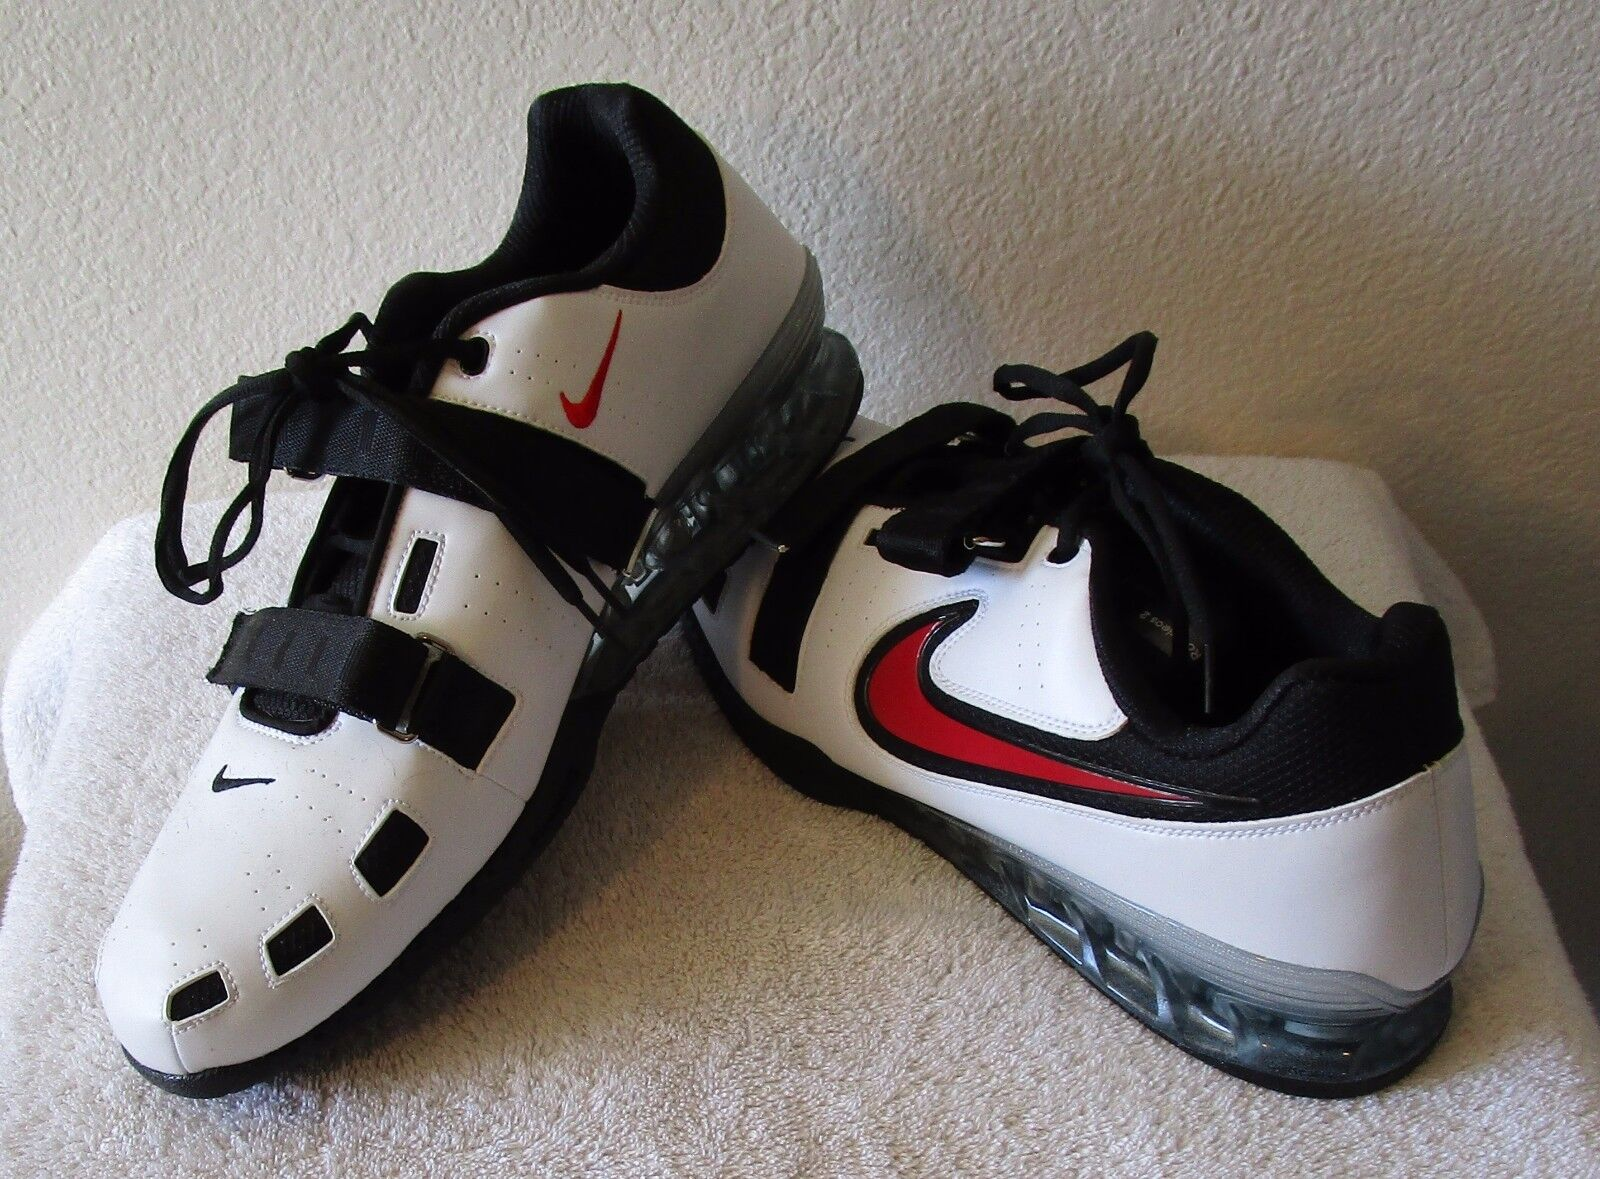 NEW Nike Romaleos 2 Mens Weightlifting Shoes 17 White/Black/Red MSRP200